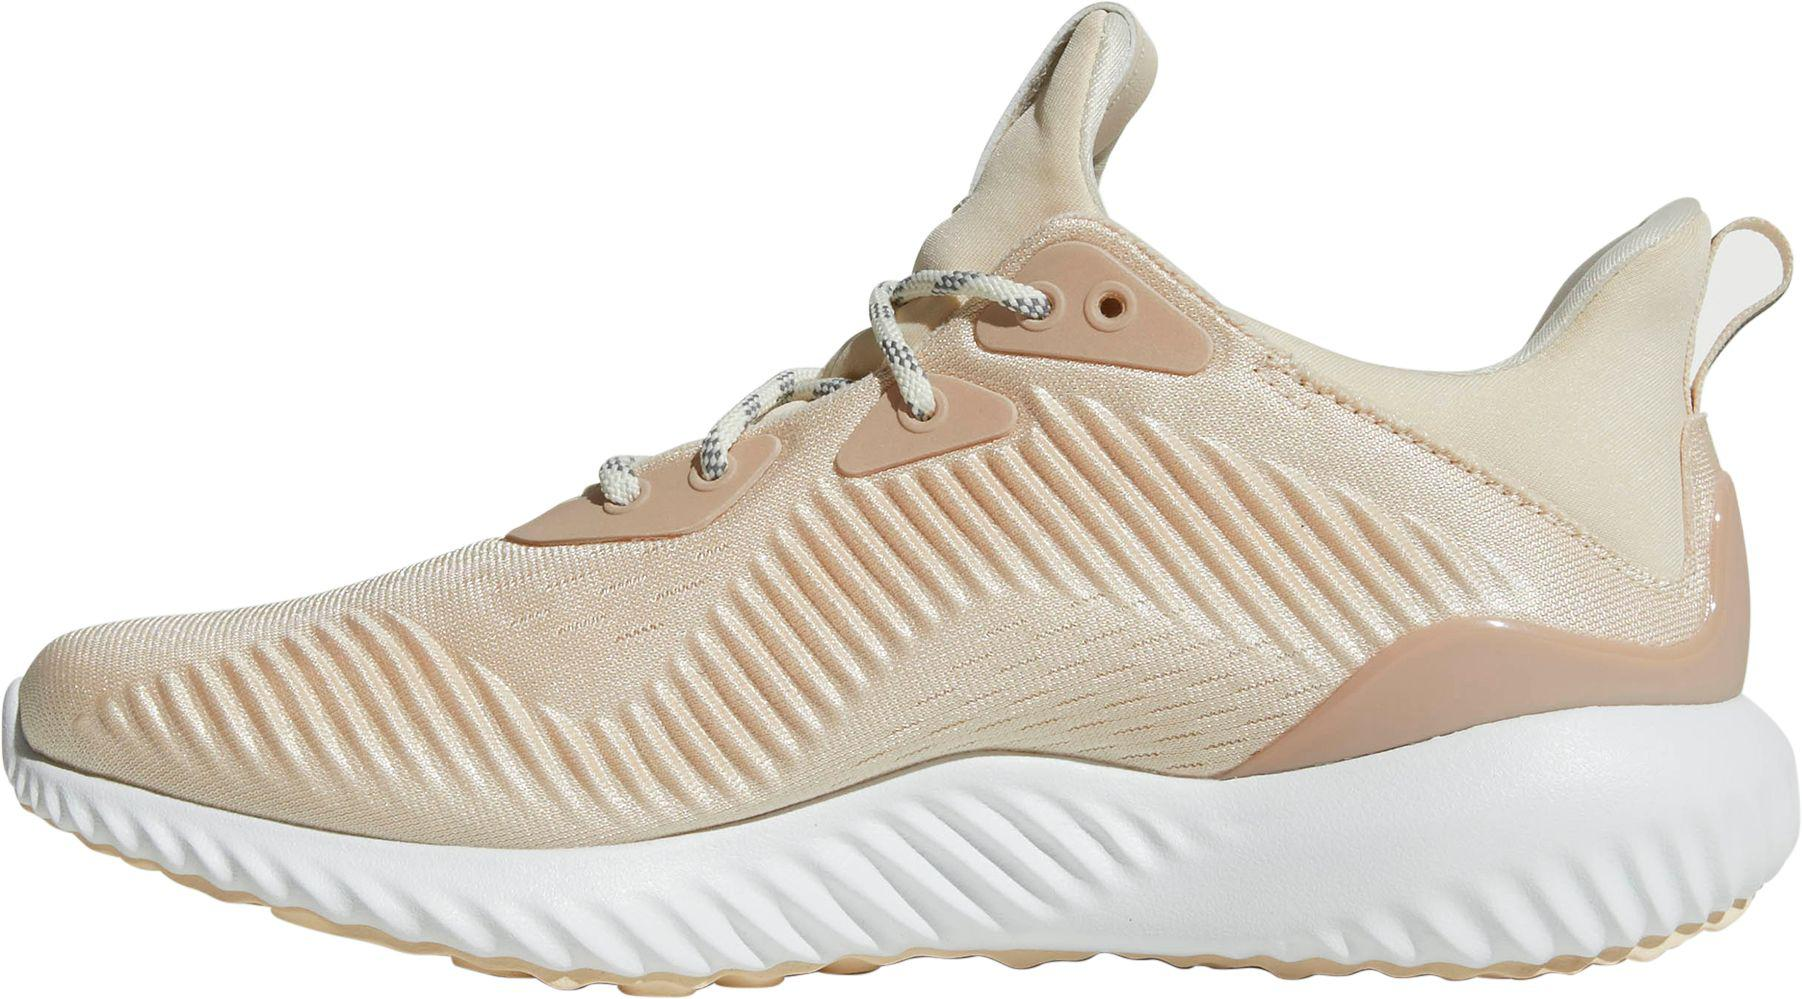 479ac28e54257 Lyst - Adidas Alphabounce Running Shoes in White